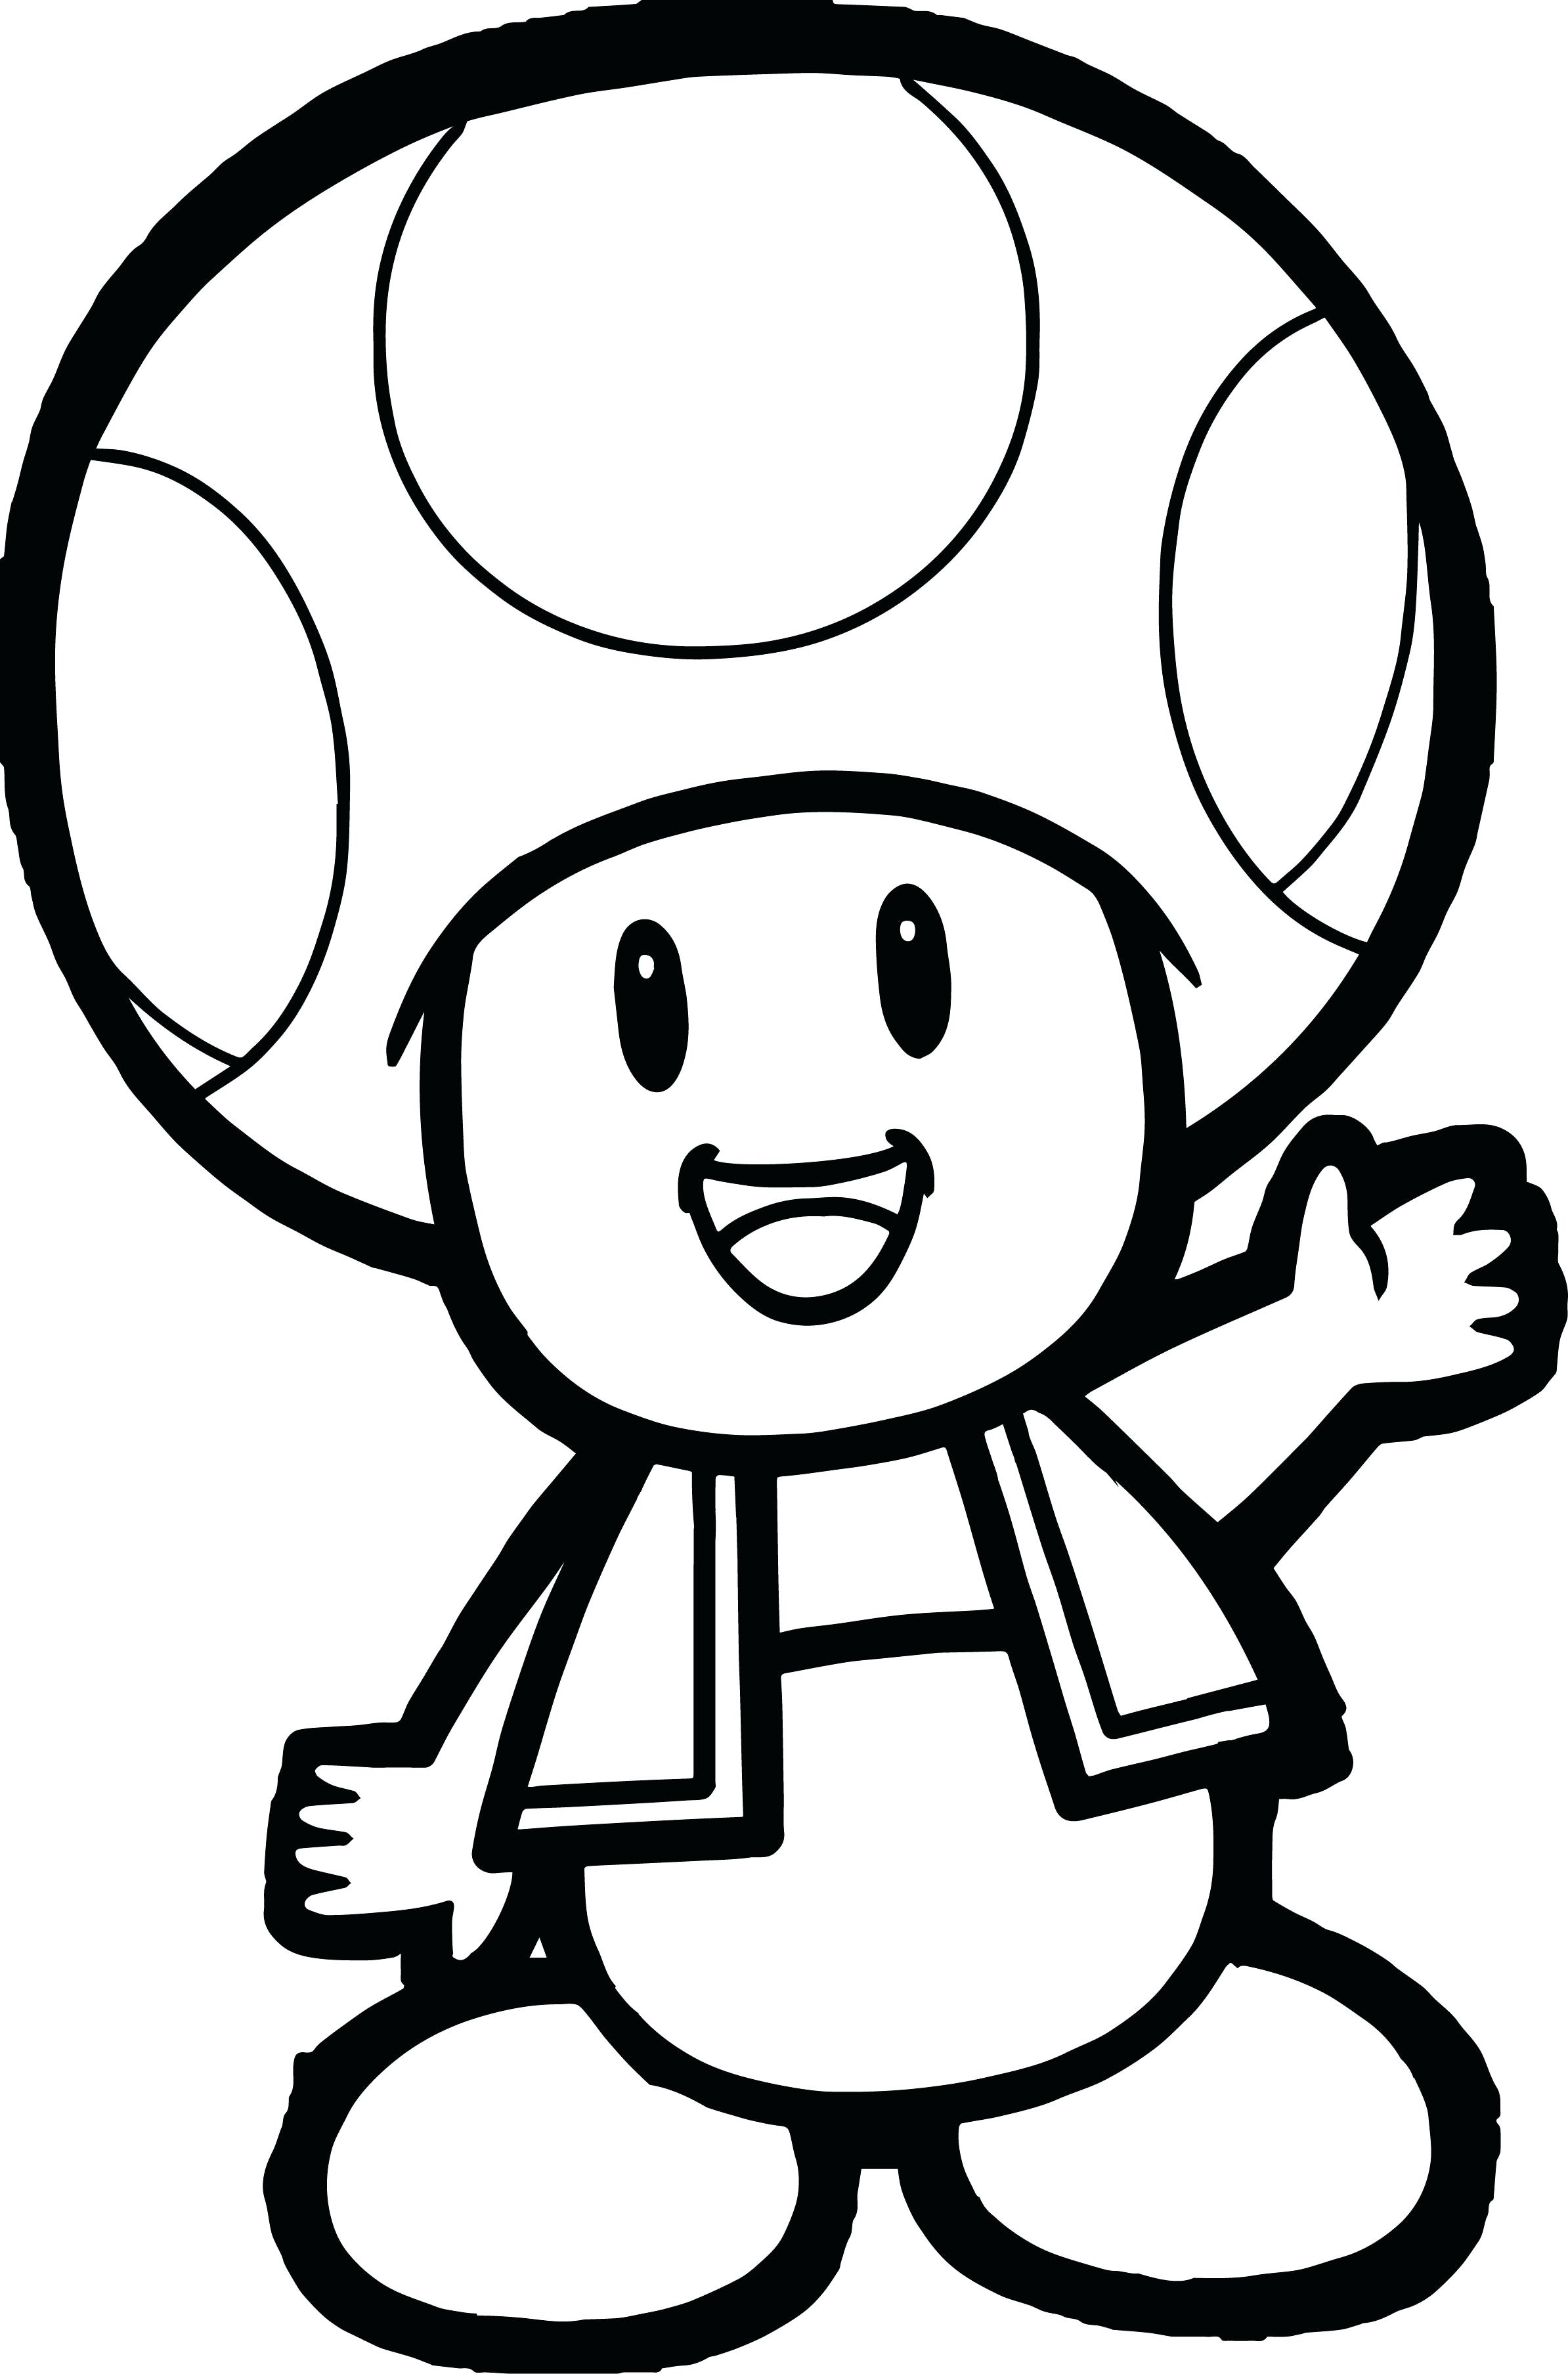 2388x3615 Old Fashioned Super Mario Coloring Page Mold